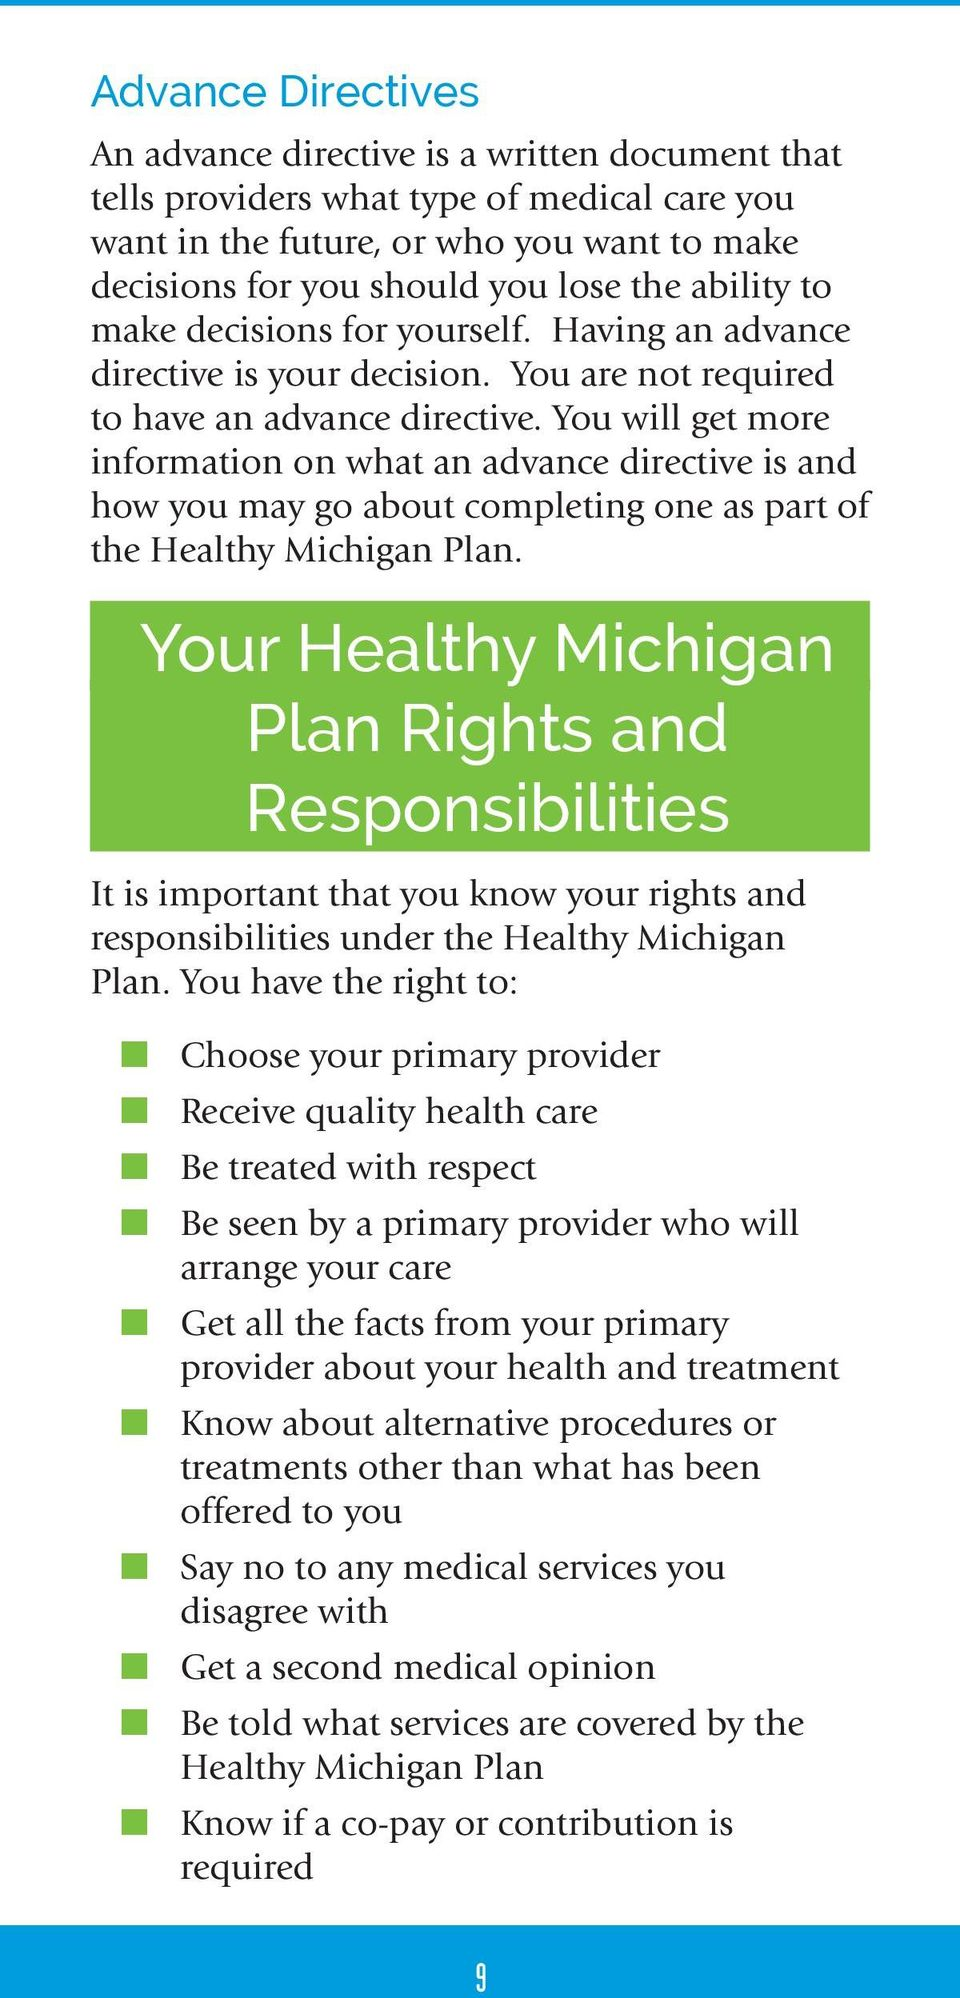 You will get more information on what an advance directive is and how you may go about completing one as part of the Healthy Michigan Plan.